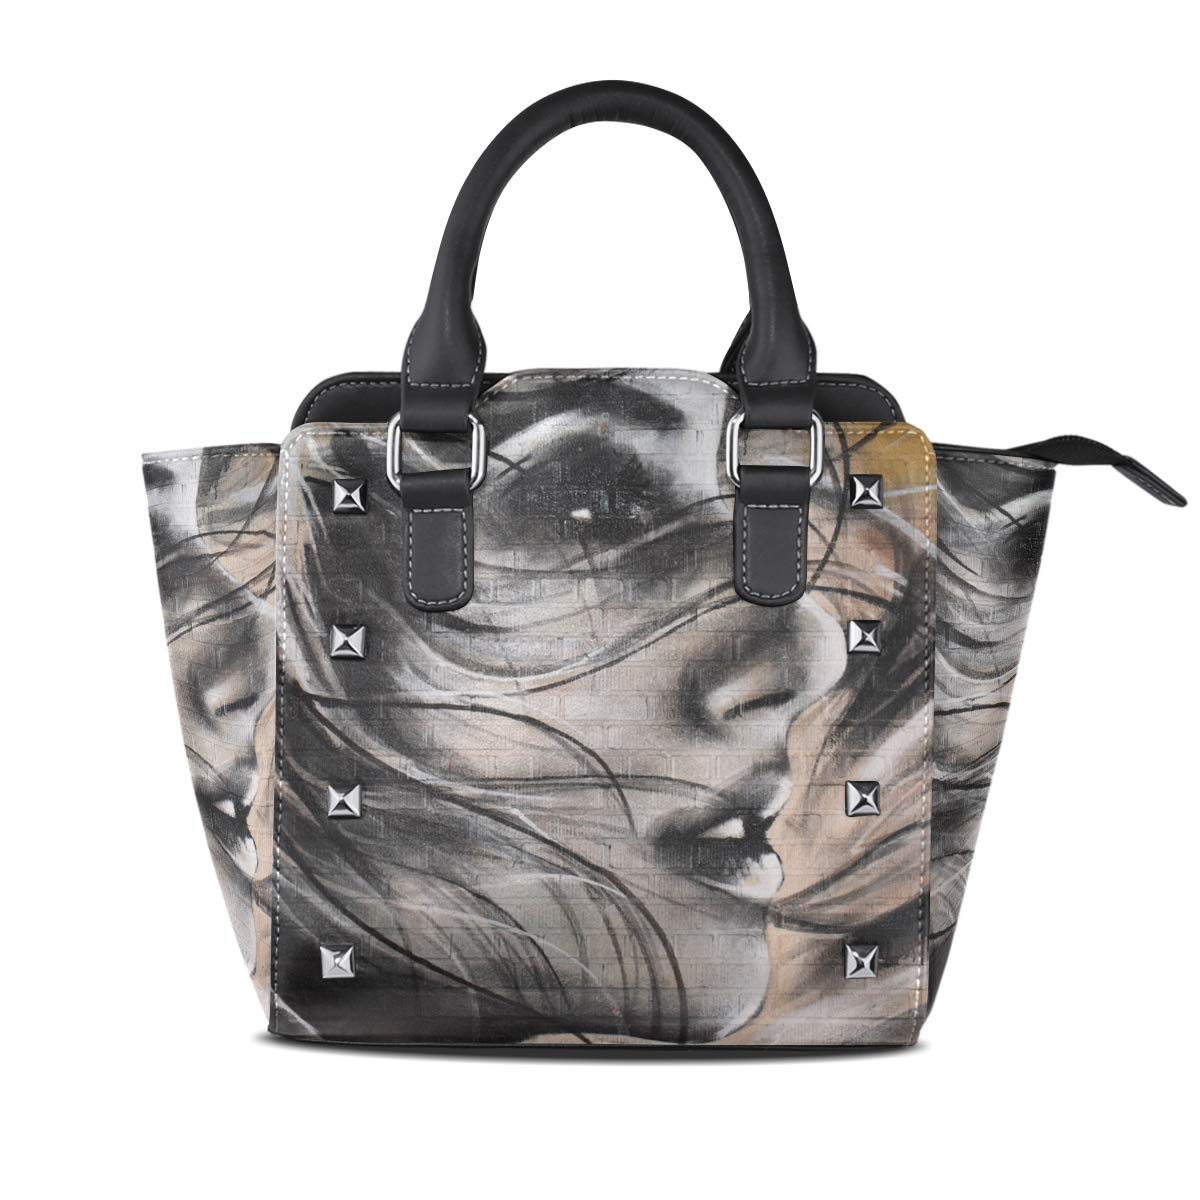 Design 1 Handbag Brown Brick Wall With Woman Painting Genuine Leather Tote Rivet Bag Shoulder Strap Top Handle Women